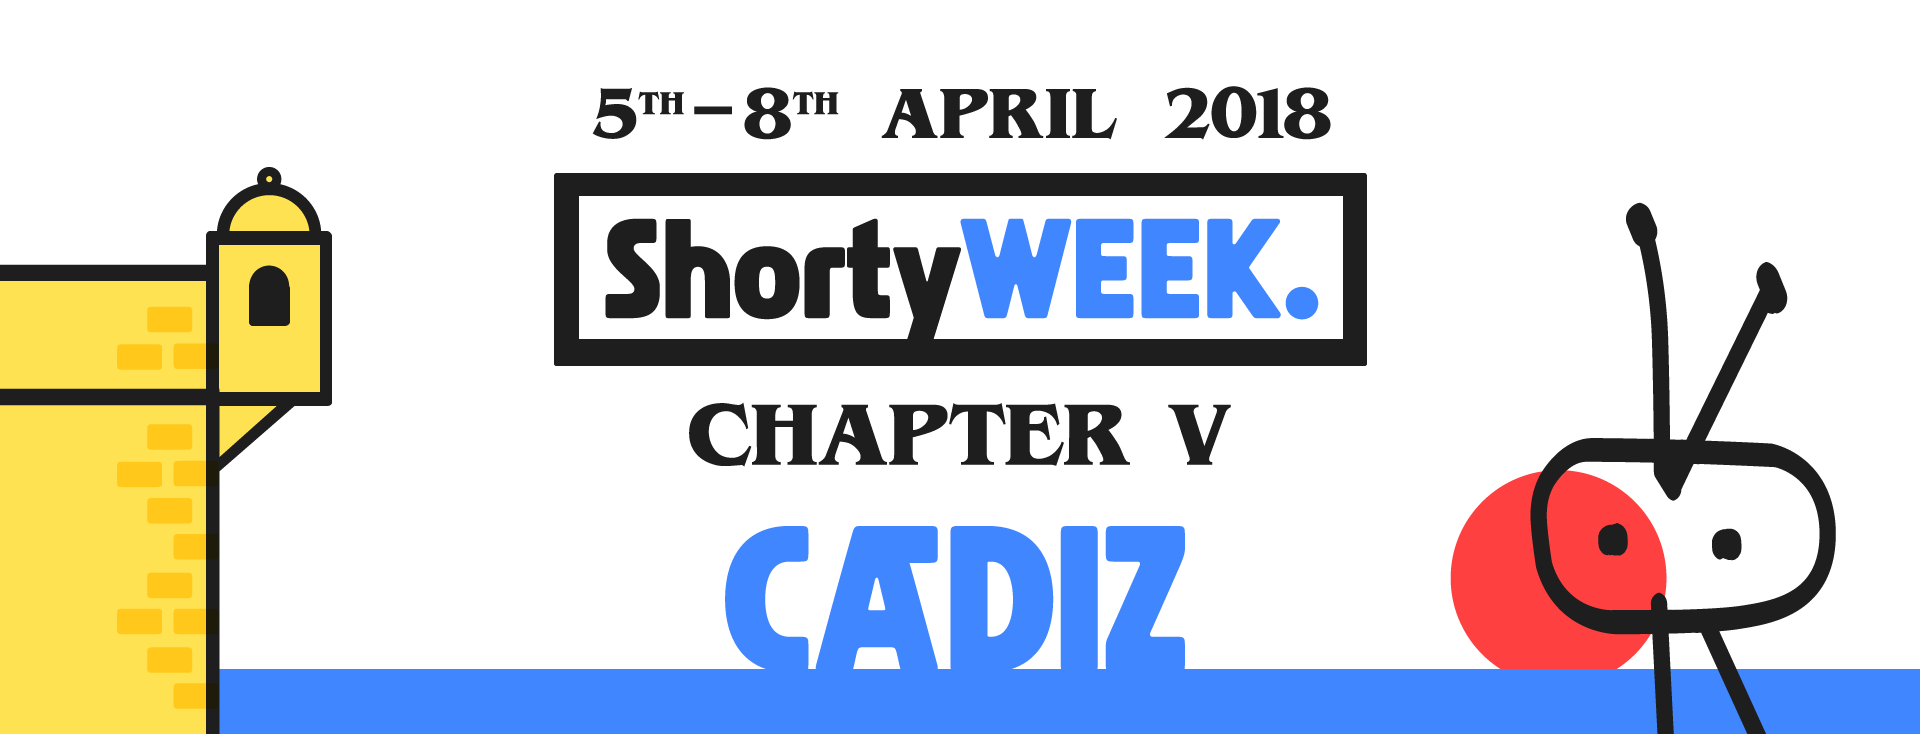 Shorty Week